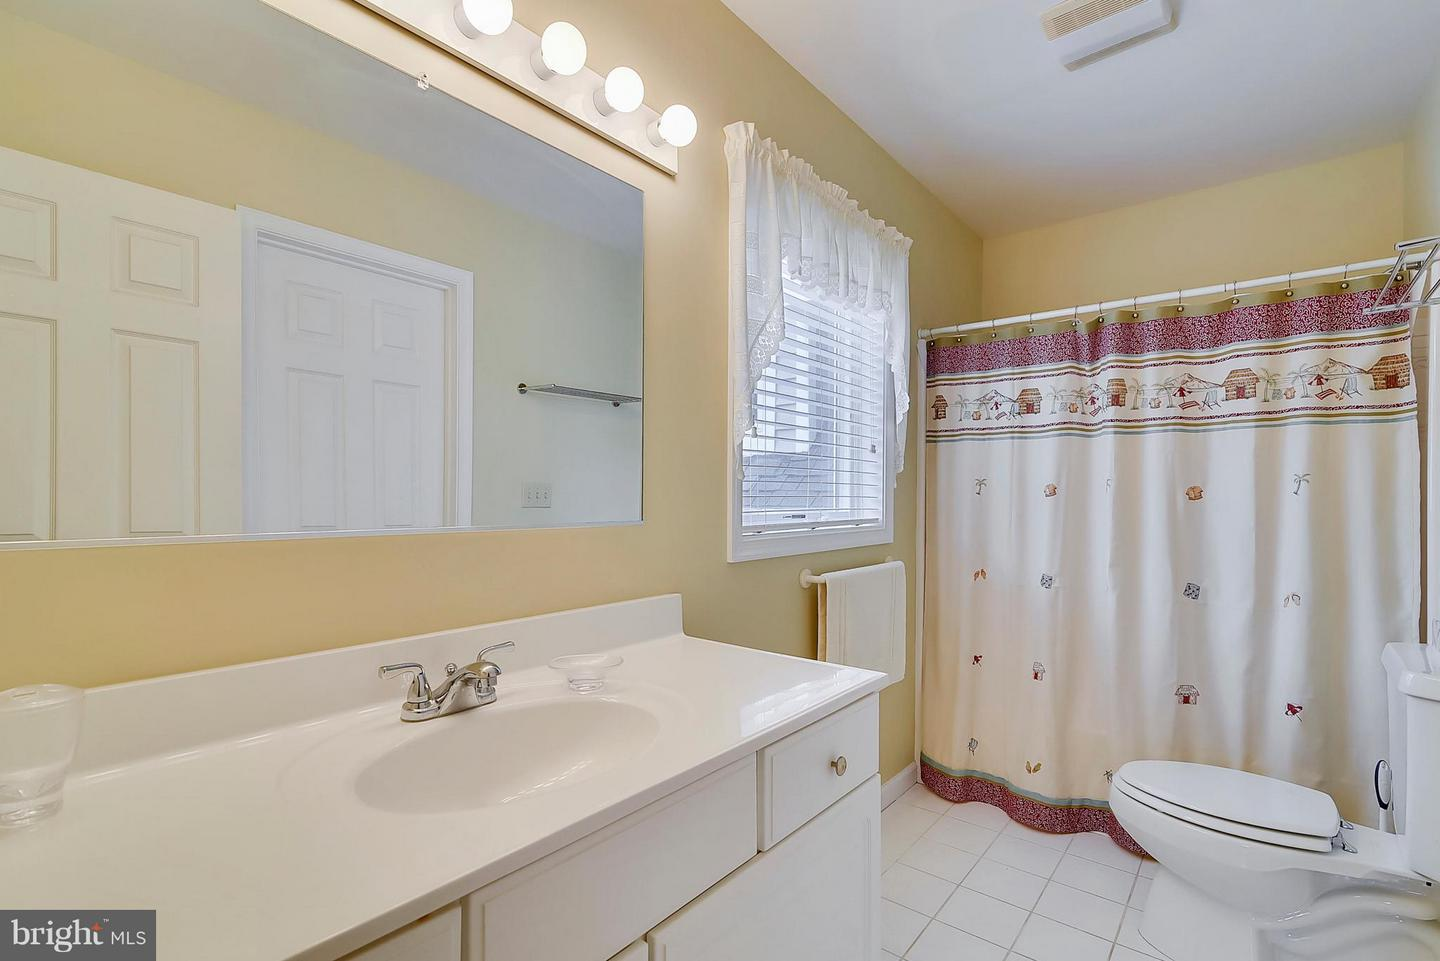 1002344128-300986982849-2018-11-07-14-16-58 39634 Seatrout Cir | North Bethany, DE Real Estate For Sale | MLS# 1002344128  - 1st Choice Properties